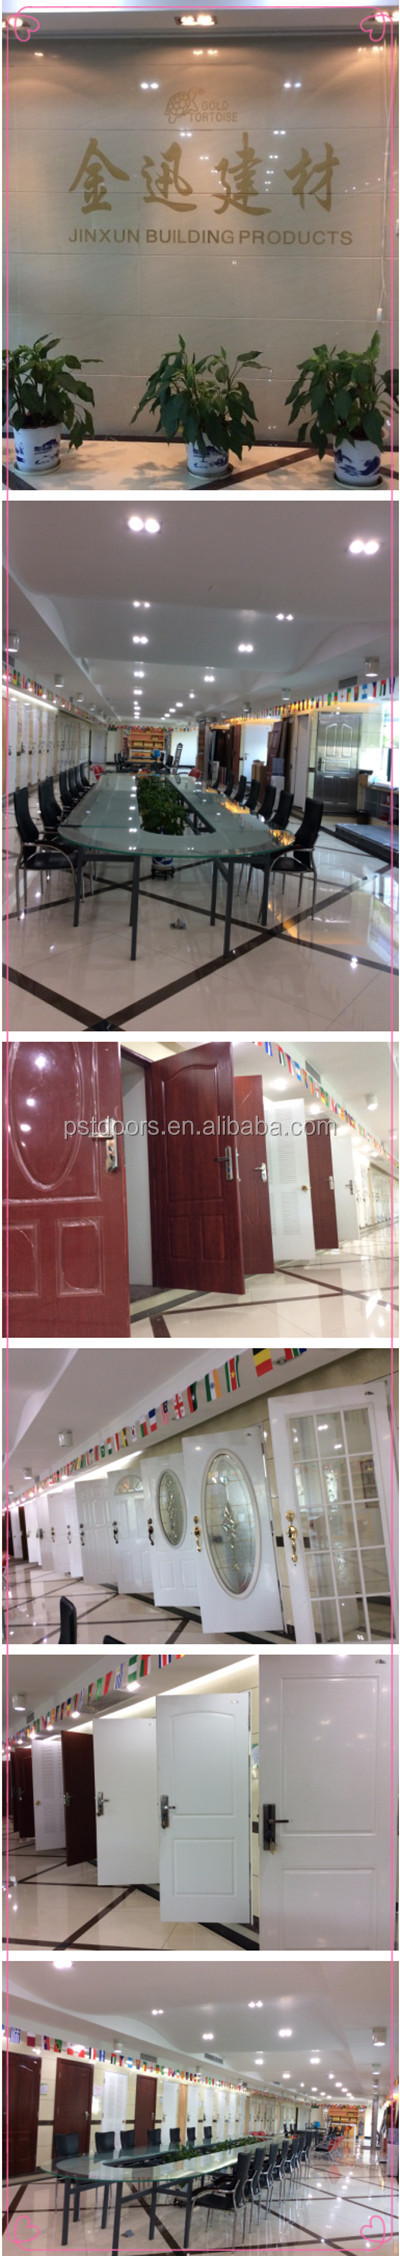 hot sale used interior steel doors wooden edge knock down frame for sale in guangzhou